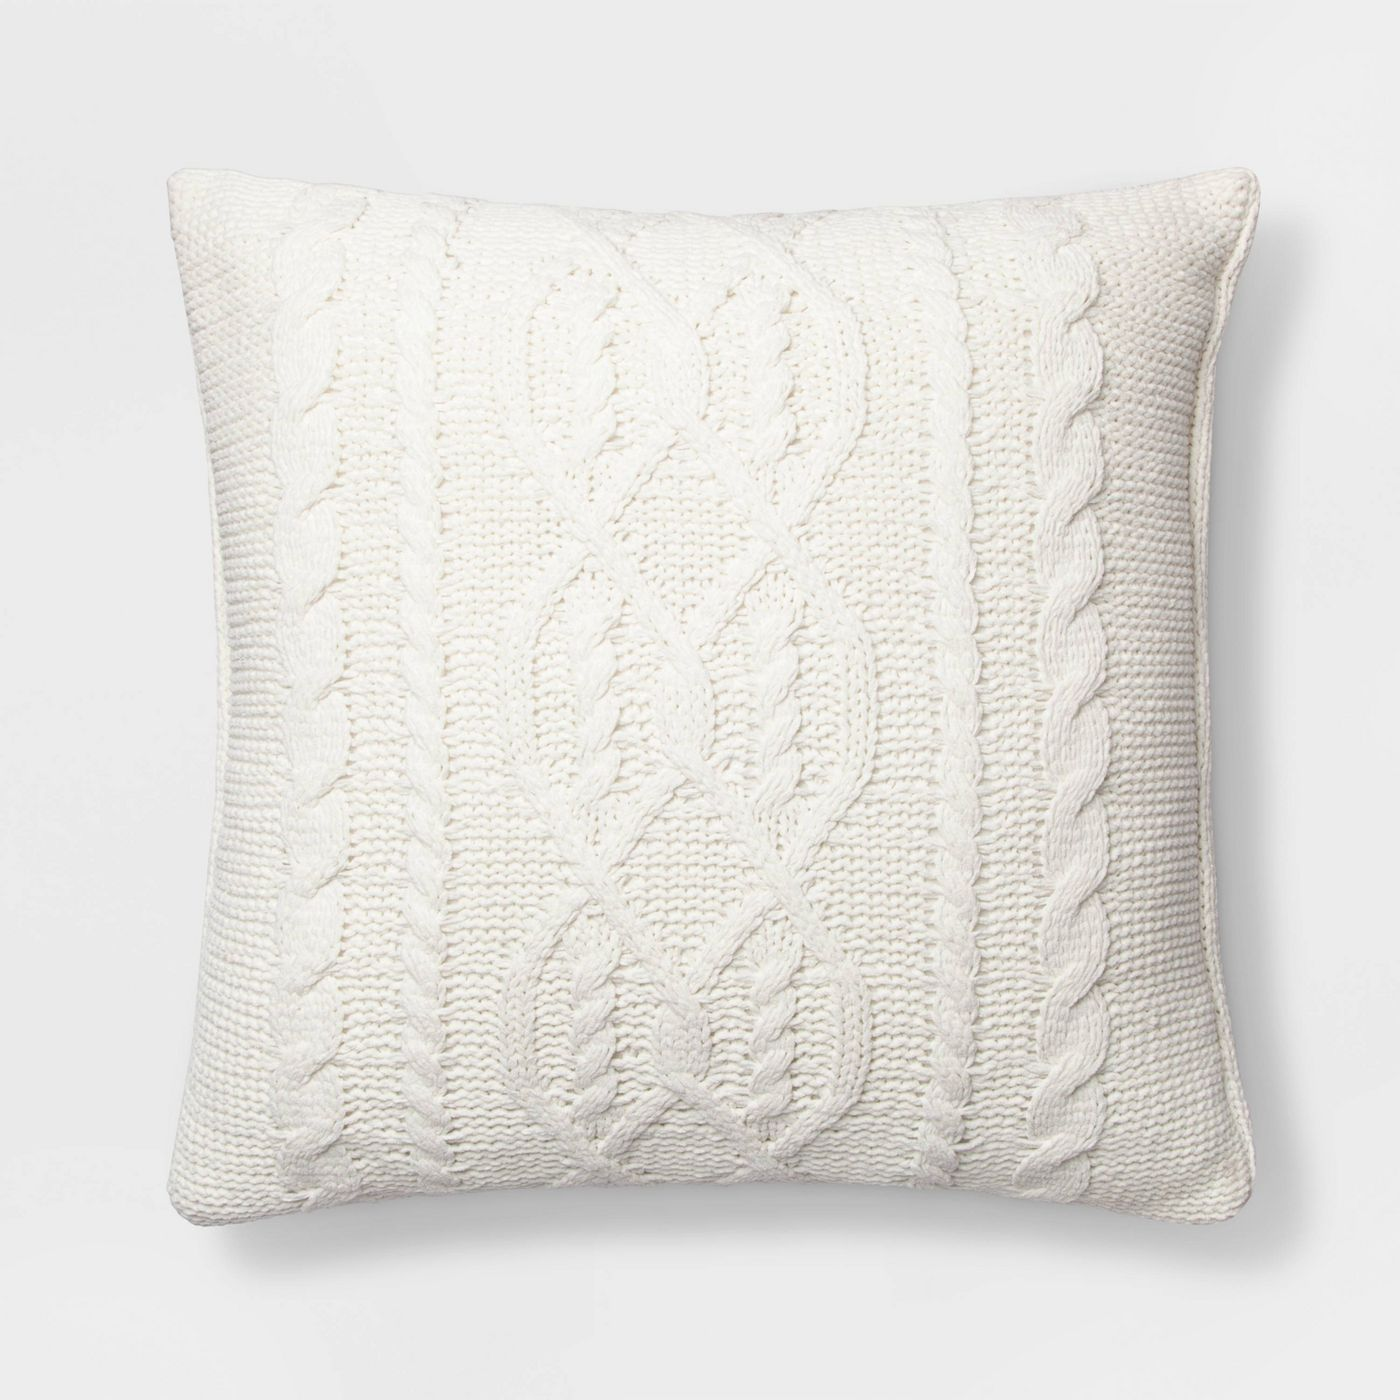 Cream knitted throw pillow